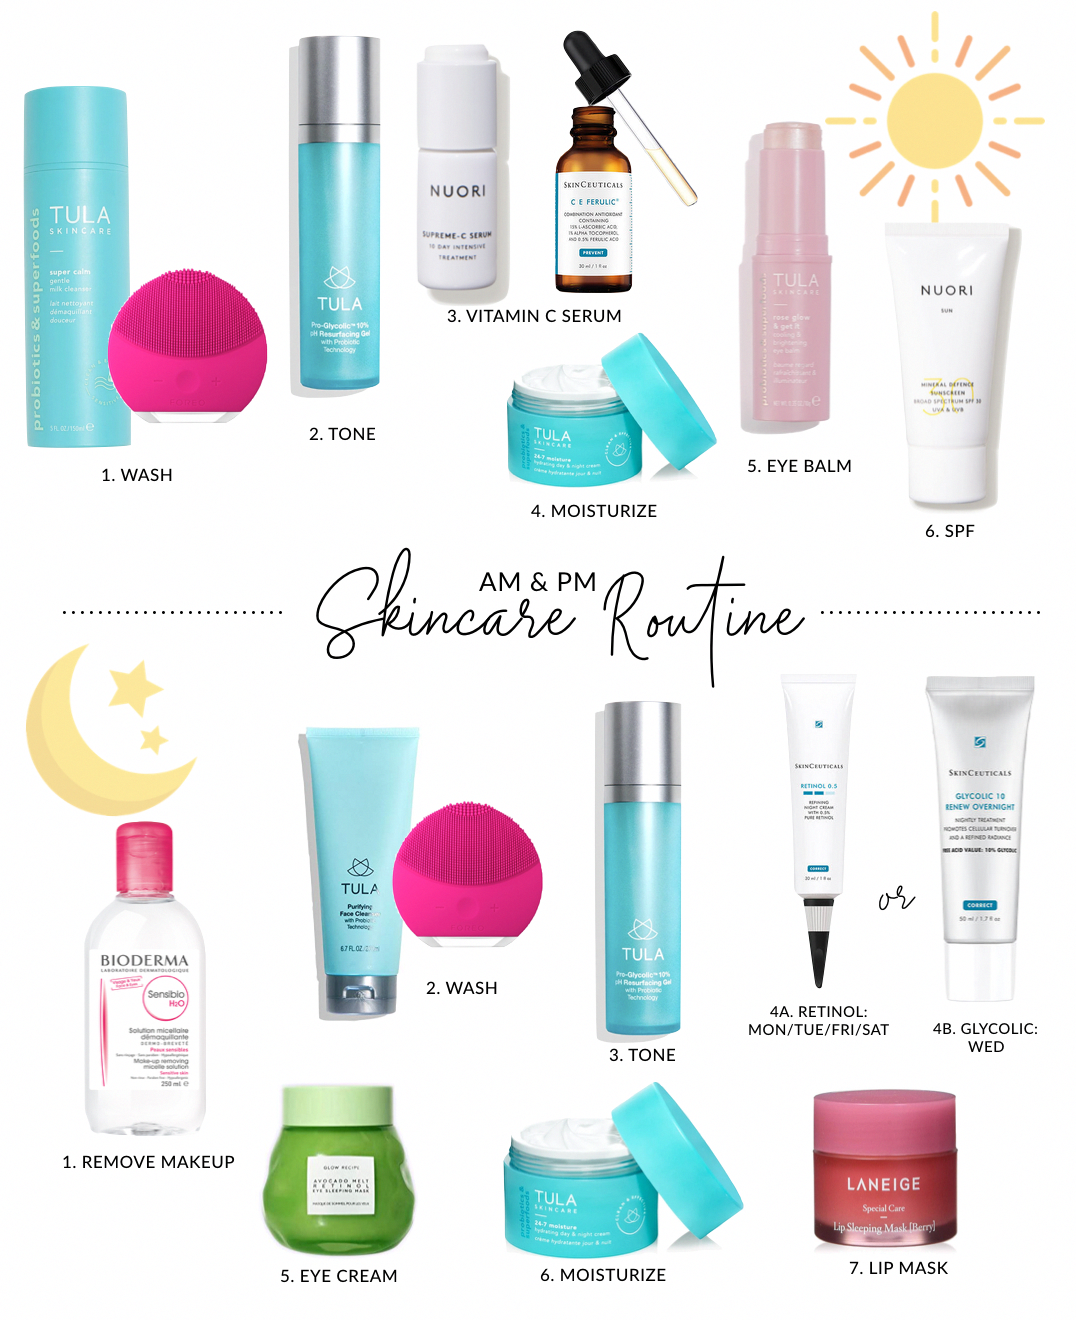 Order To Apply Skin Care Products My Morning Night Routine Skincareroutine Skin Care Routine Order Skin Care Routine Steps Night Skin Care Routine